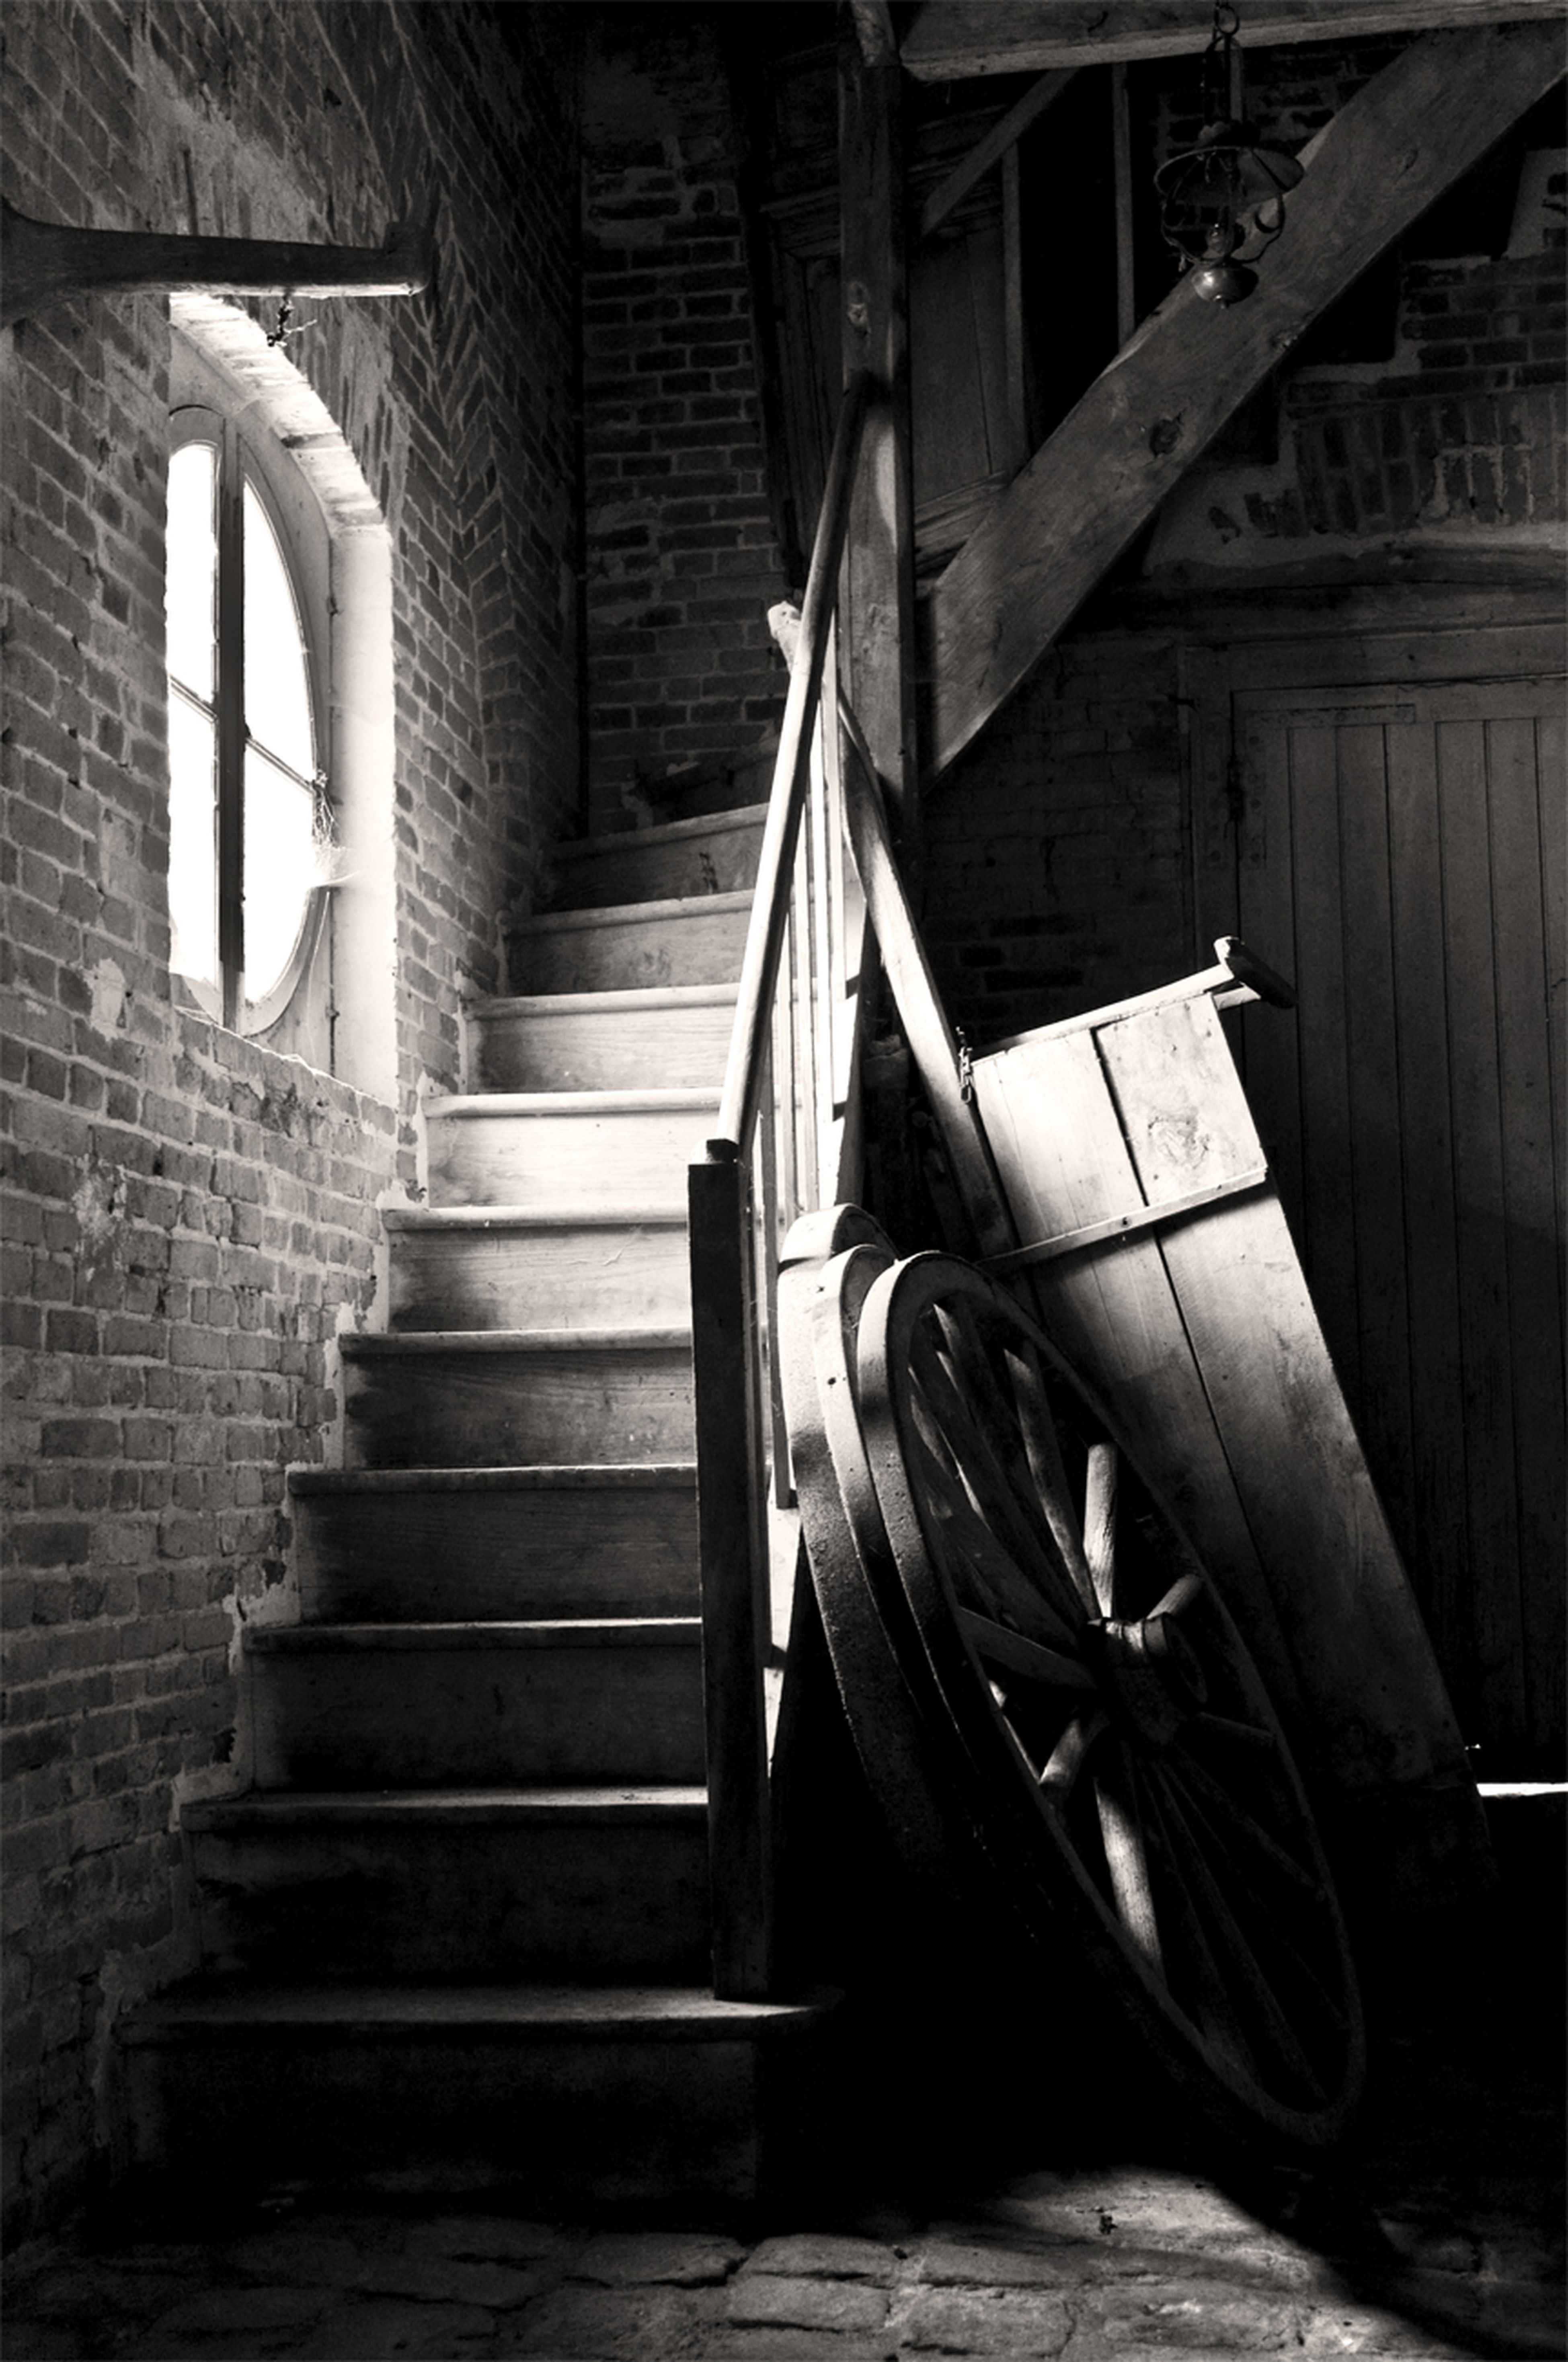 Stairs in the castle shed Bw_collection Bnw_friday_eyeemchallenge Staircase Noir Et Blanc